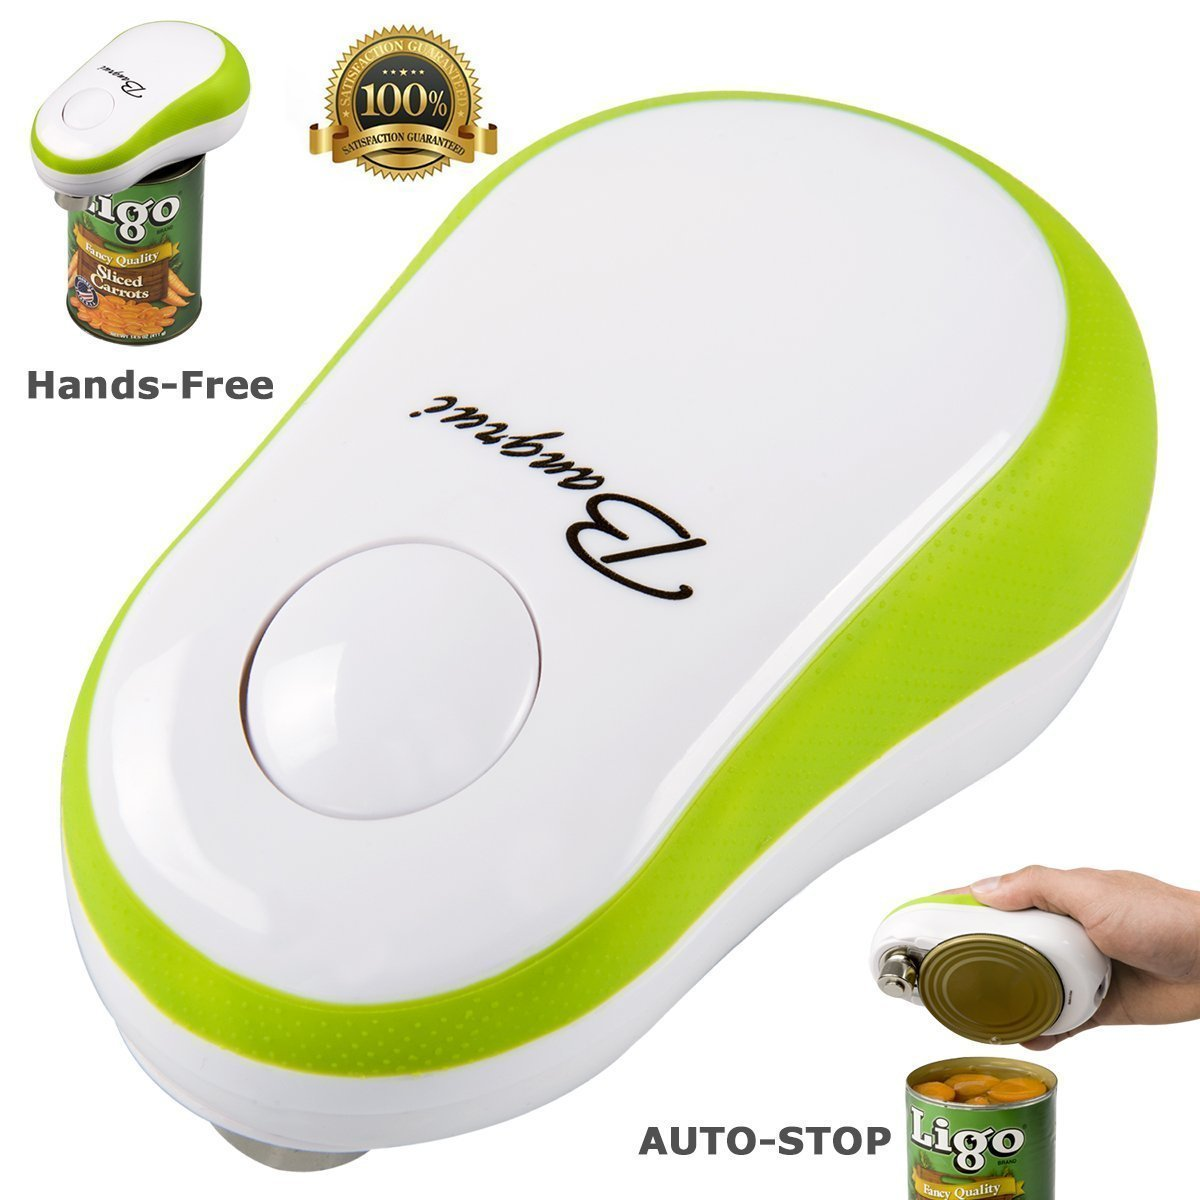 Electric Can Opener, Bangrui One Button Start & Auto Stop Can Opener, Metal/Plastics, 11.4 X 7.4 X 6.1cm, Green